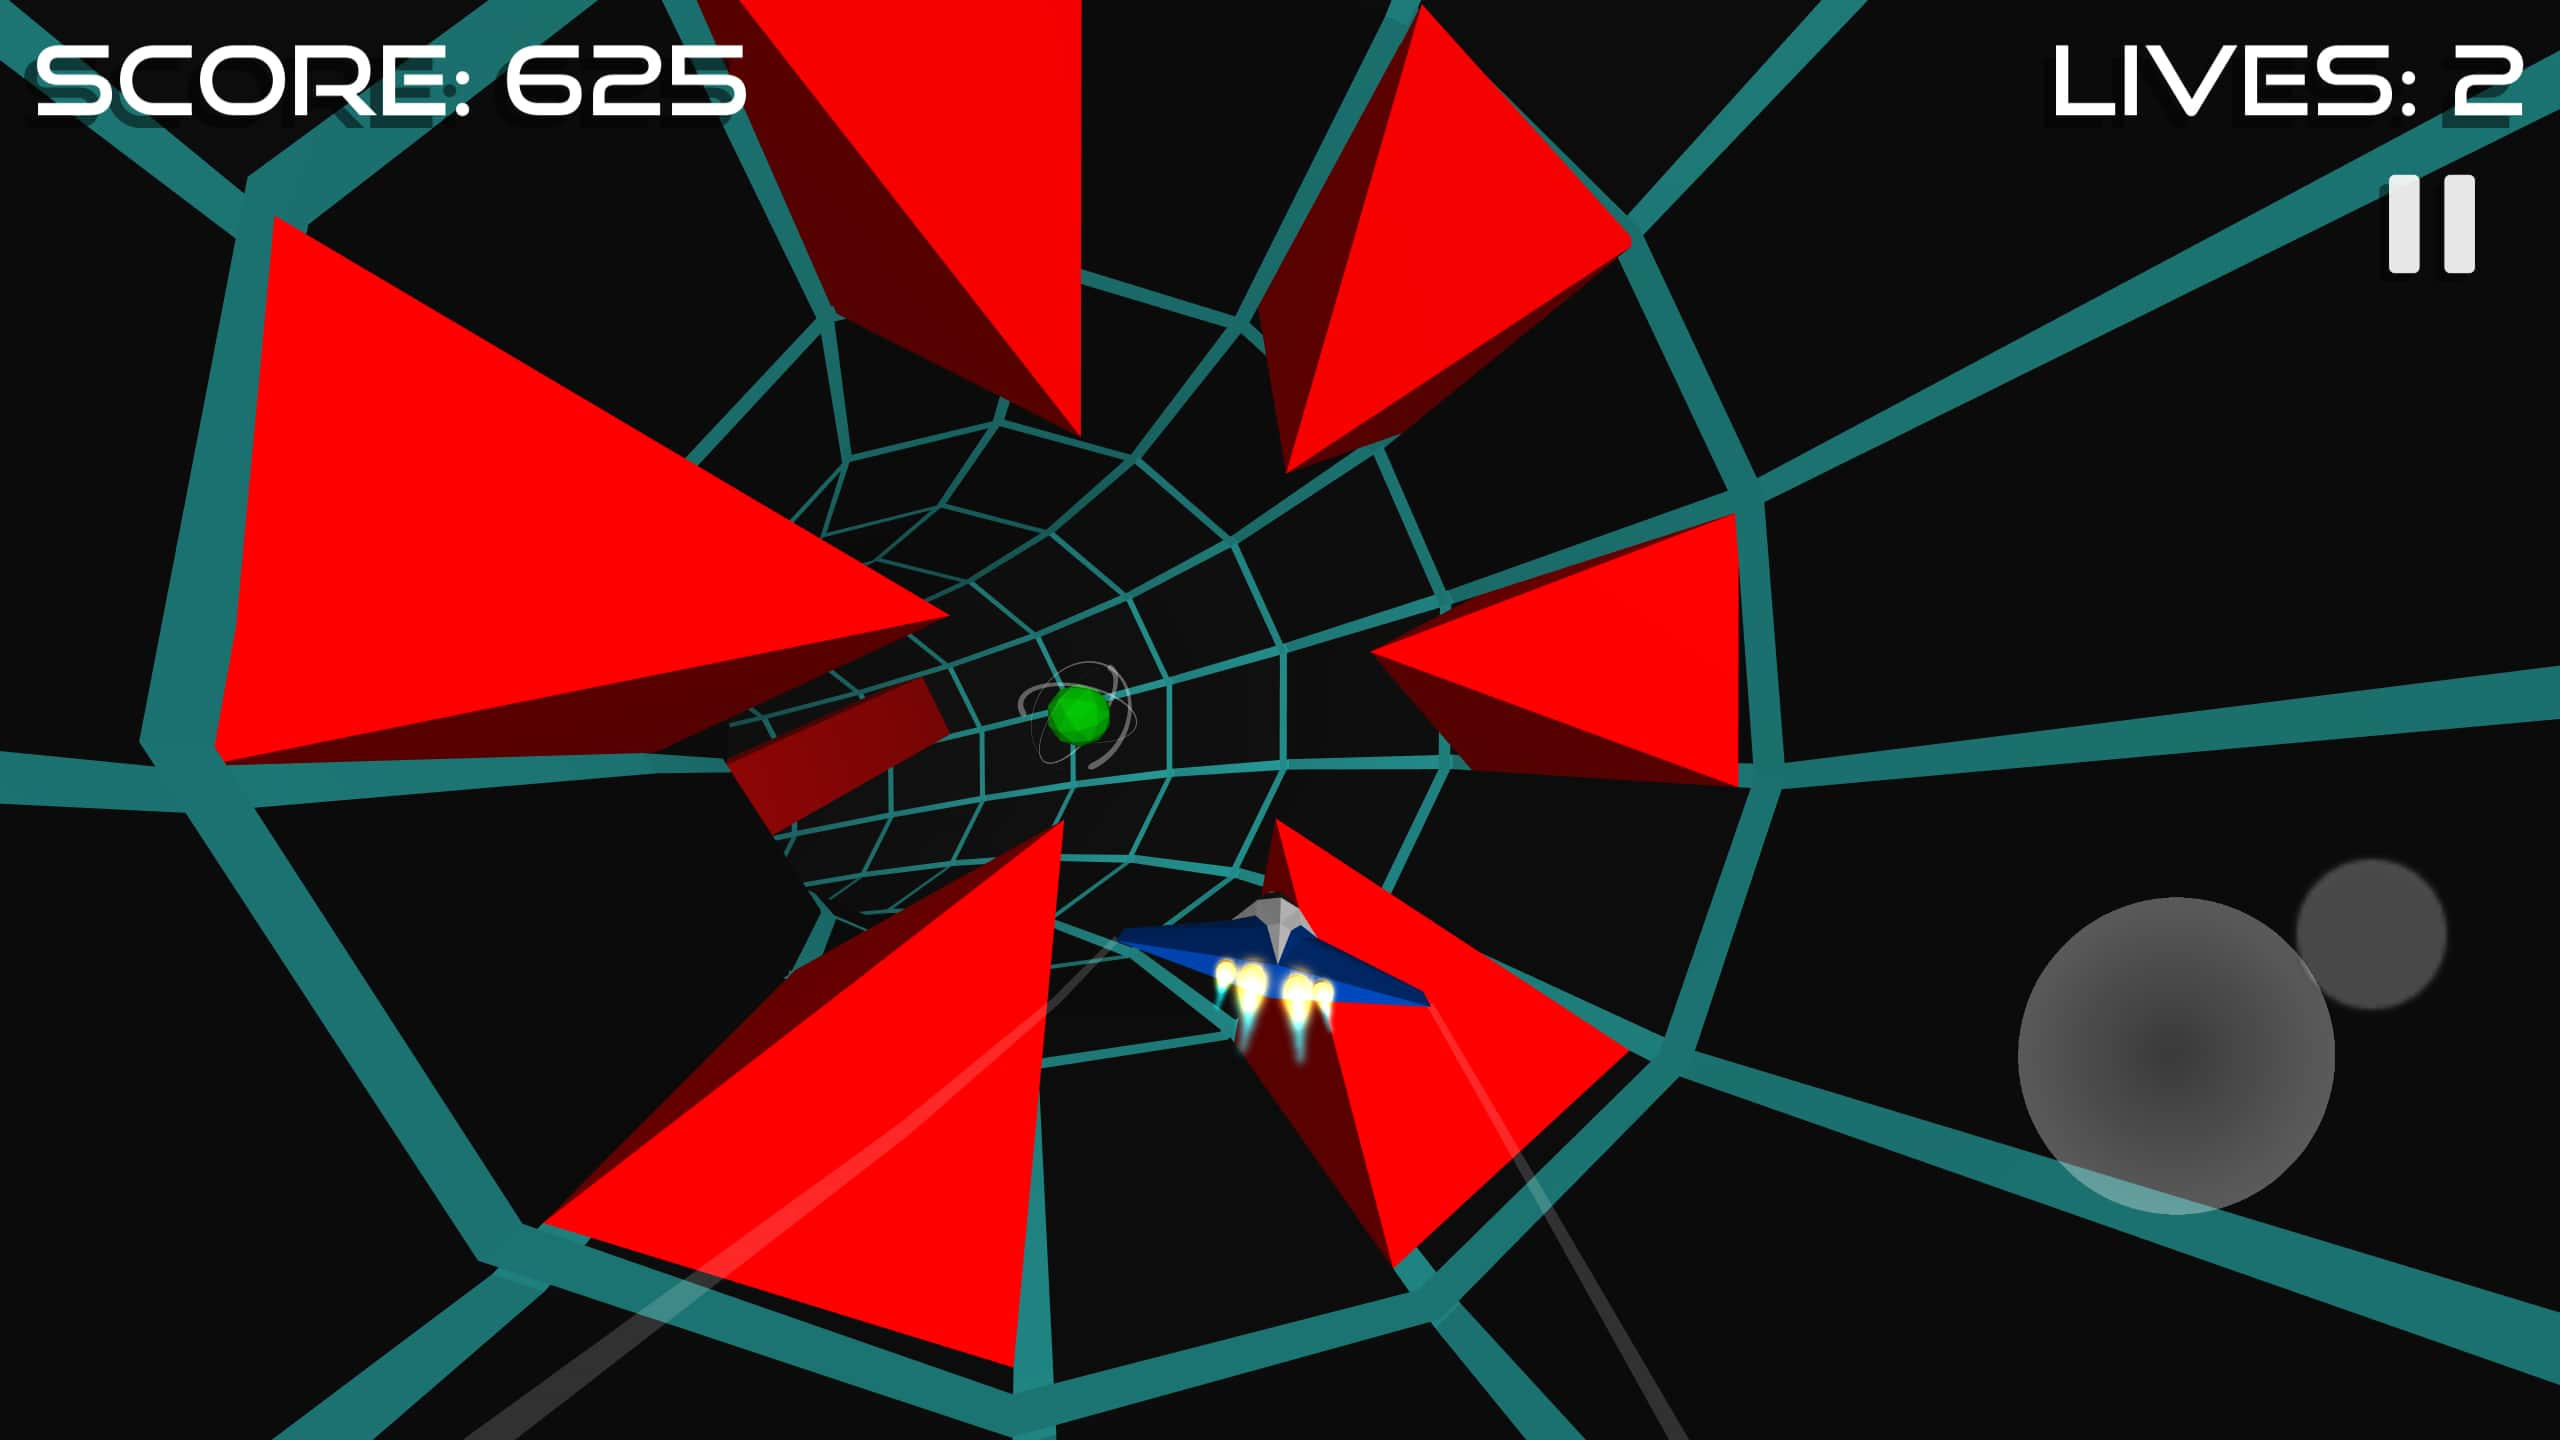 tnl2 | [Android] Neon Tunnel